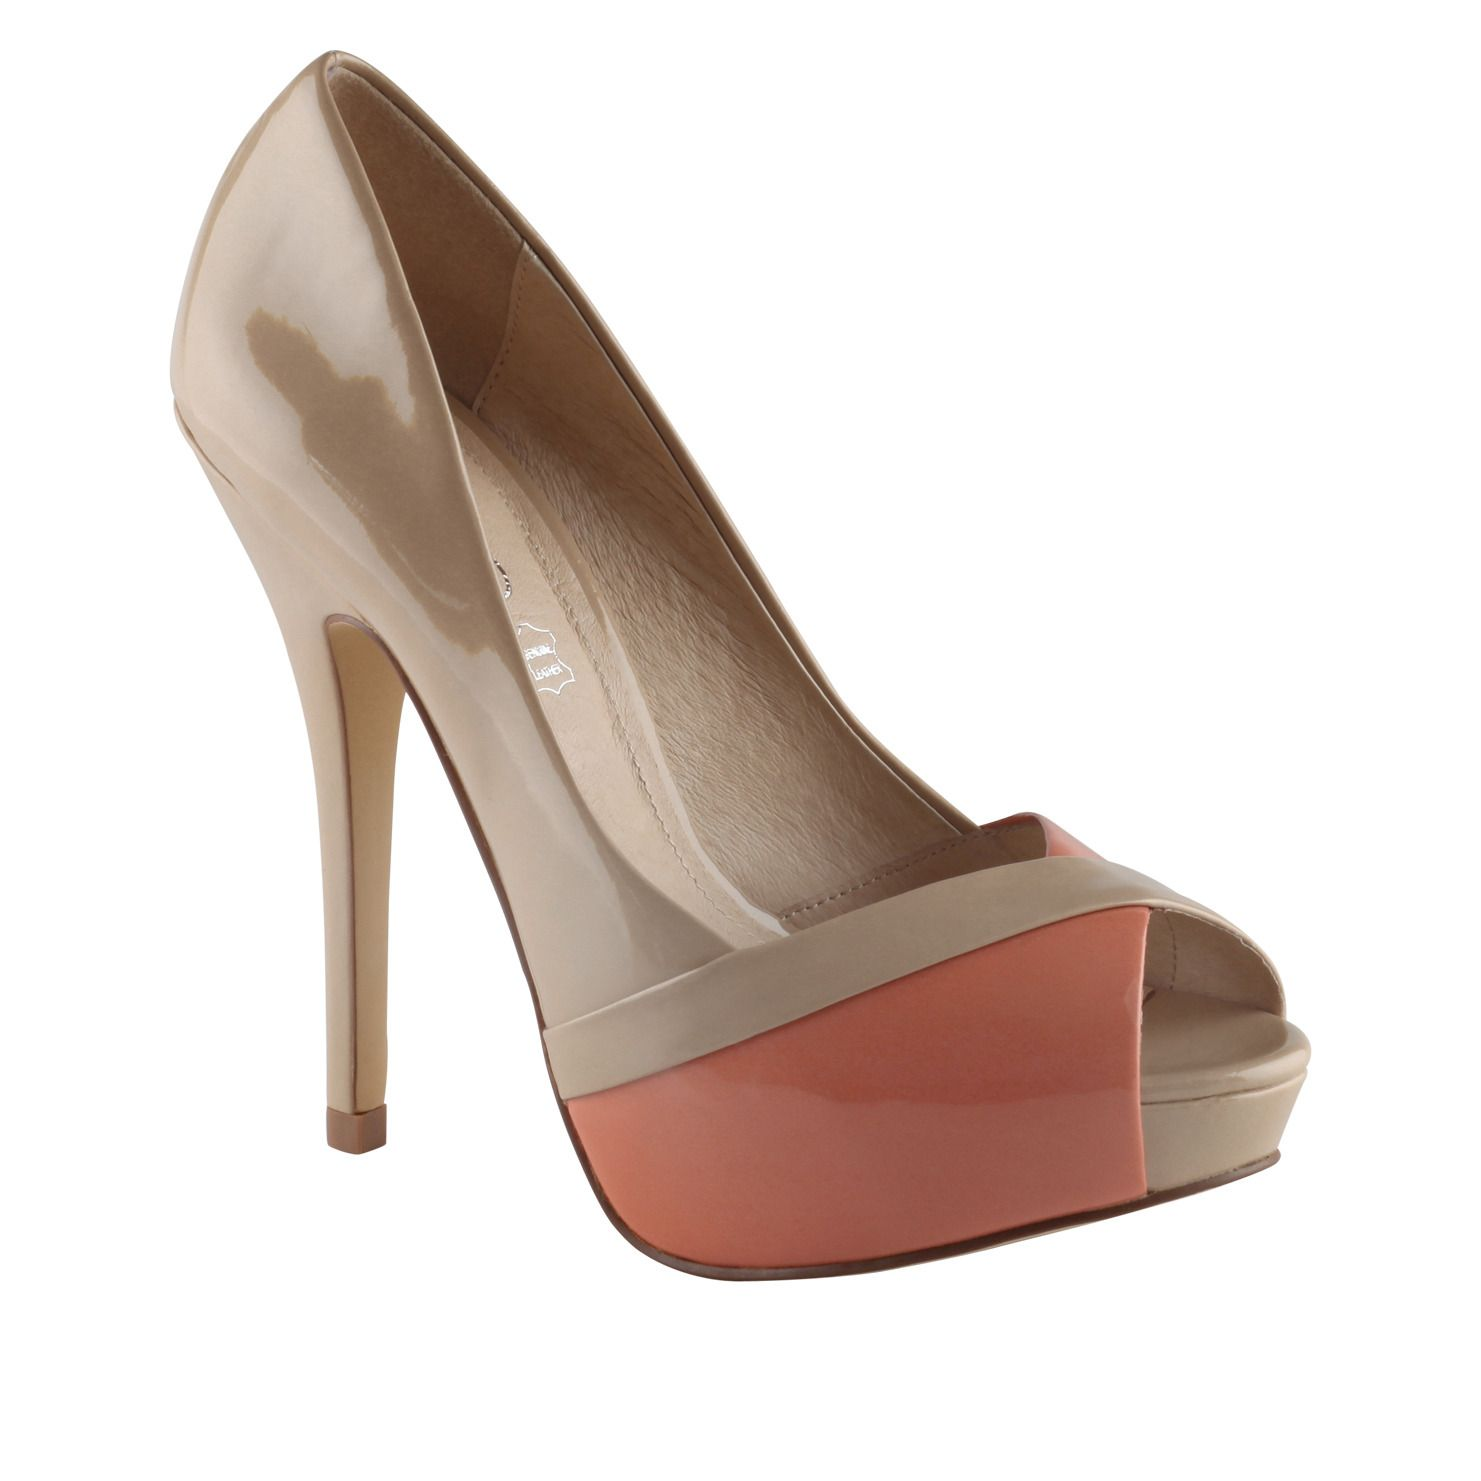 Zapatos De Salon Nude Aldo Nude Peep Toe Bilenemacia Women 39s Peep Toe Pumps